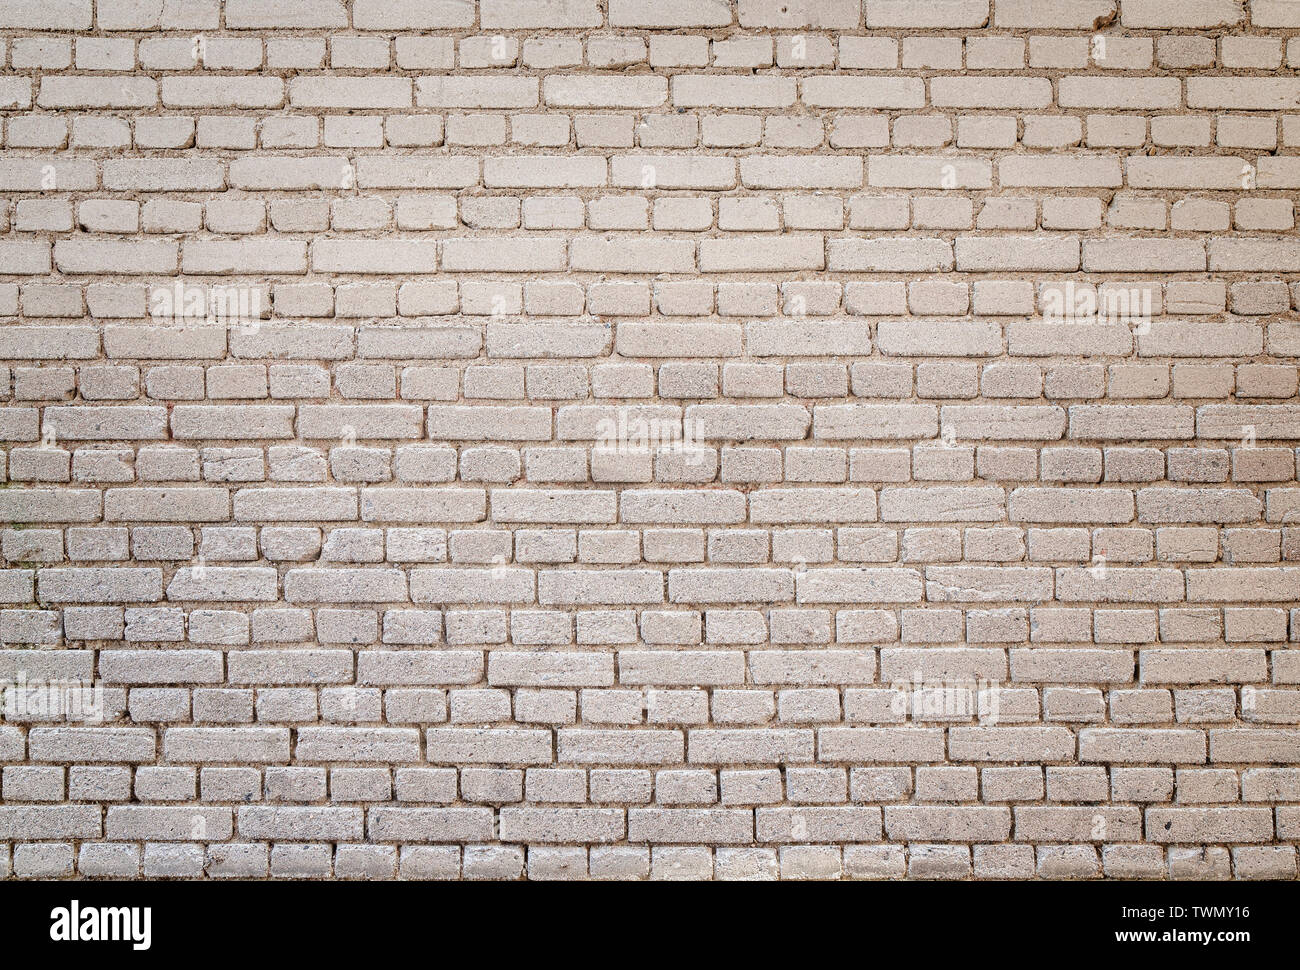 High resolution full frame background of detailed old pale brick wall with vignetting. Stock Photo